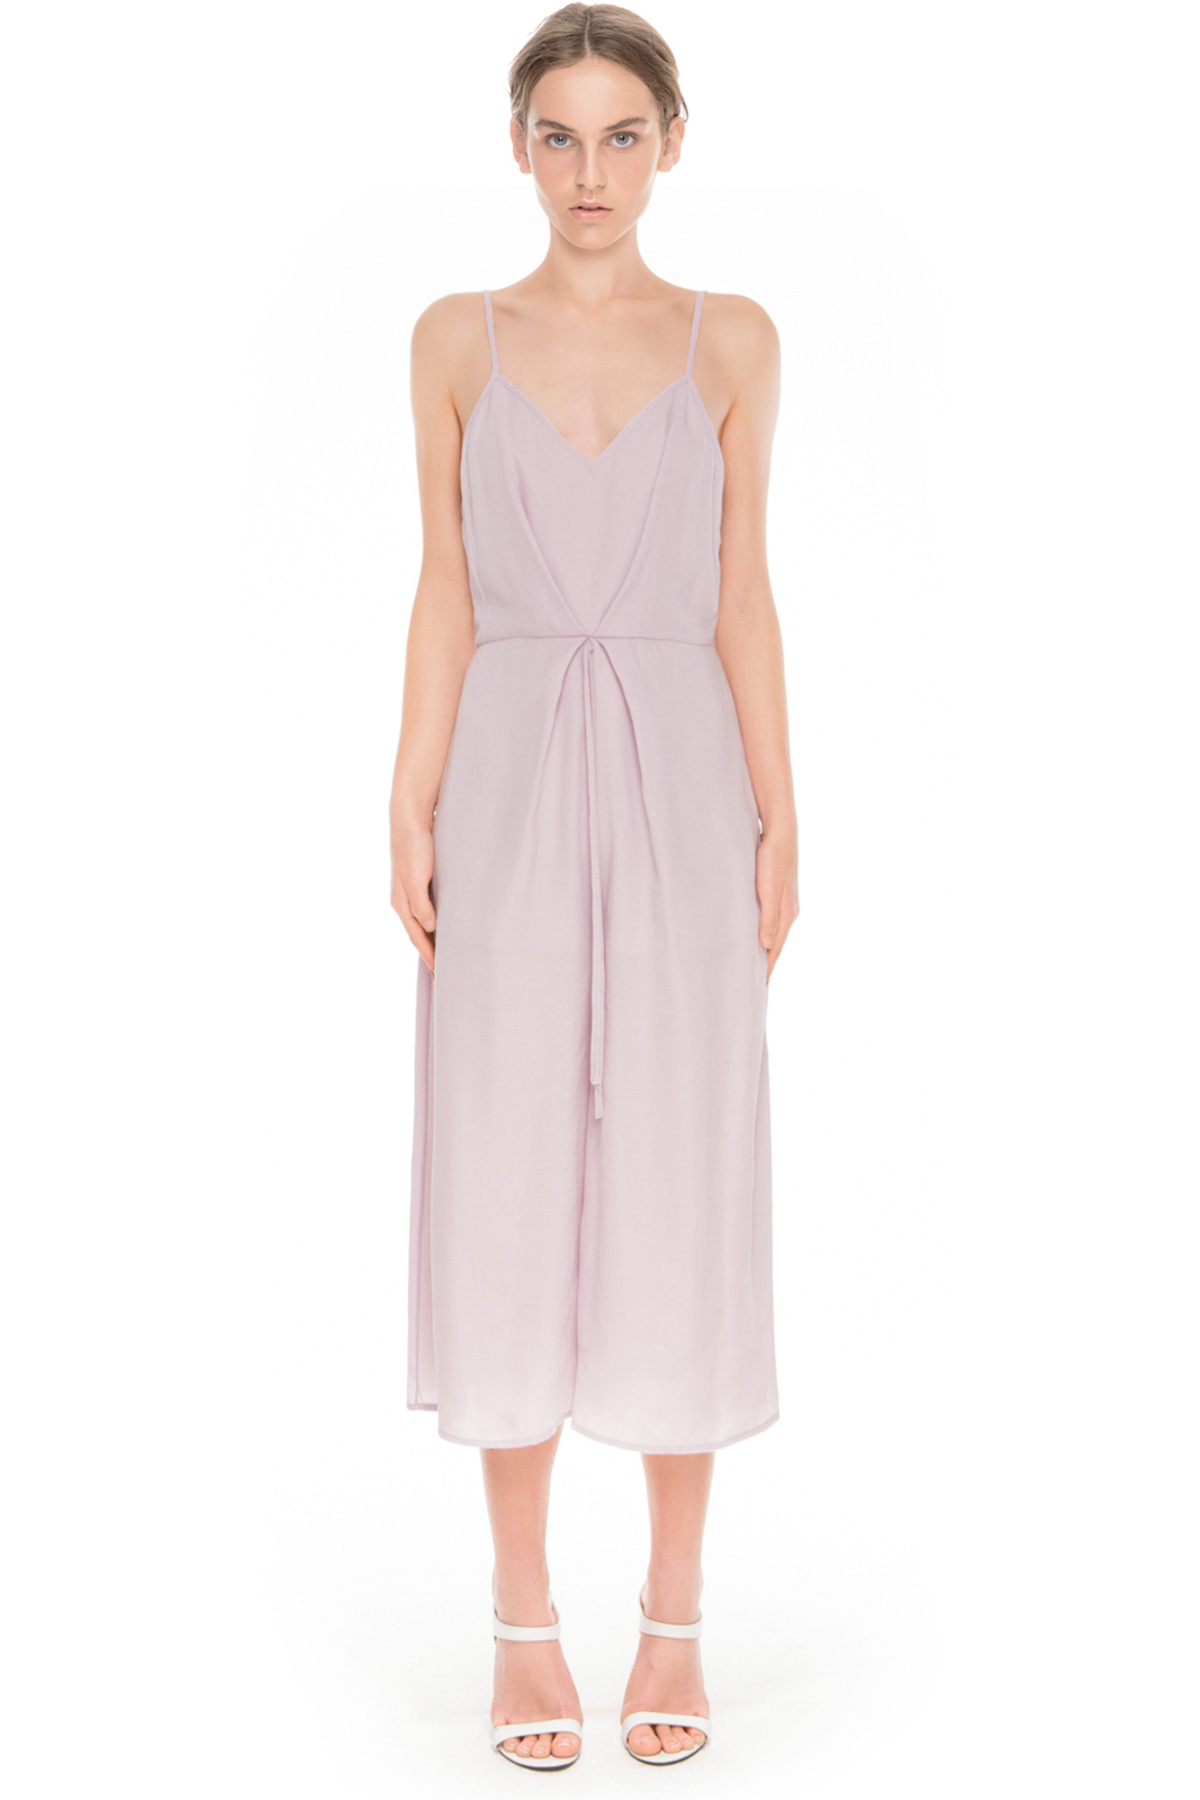 It's just a picture of Nifty The Fifth Label Moonlit Jumpsuit